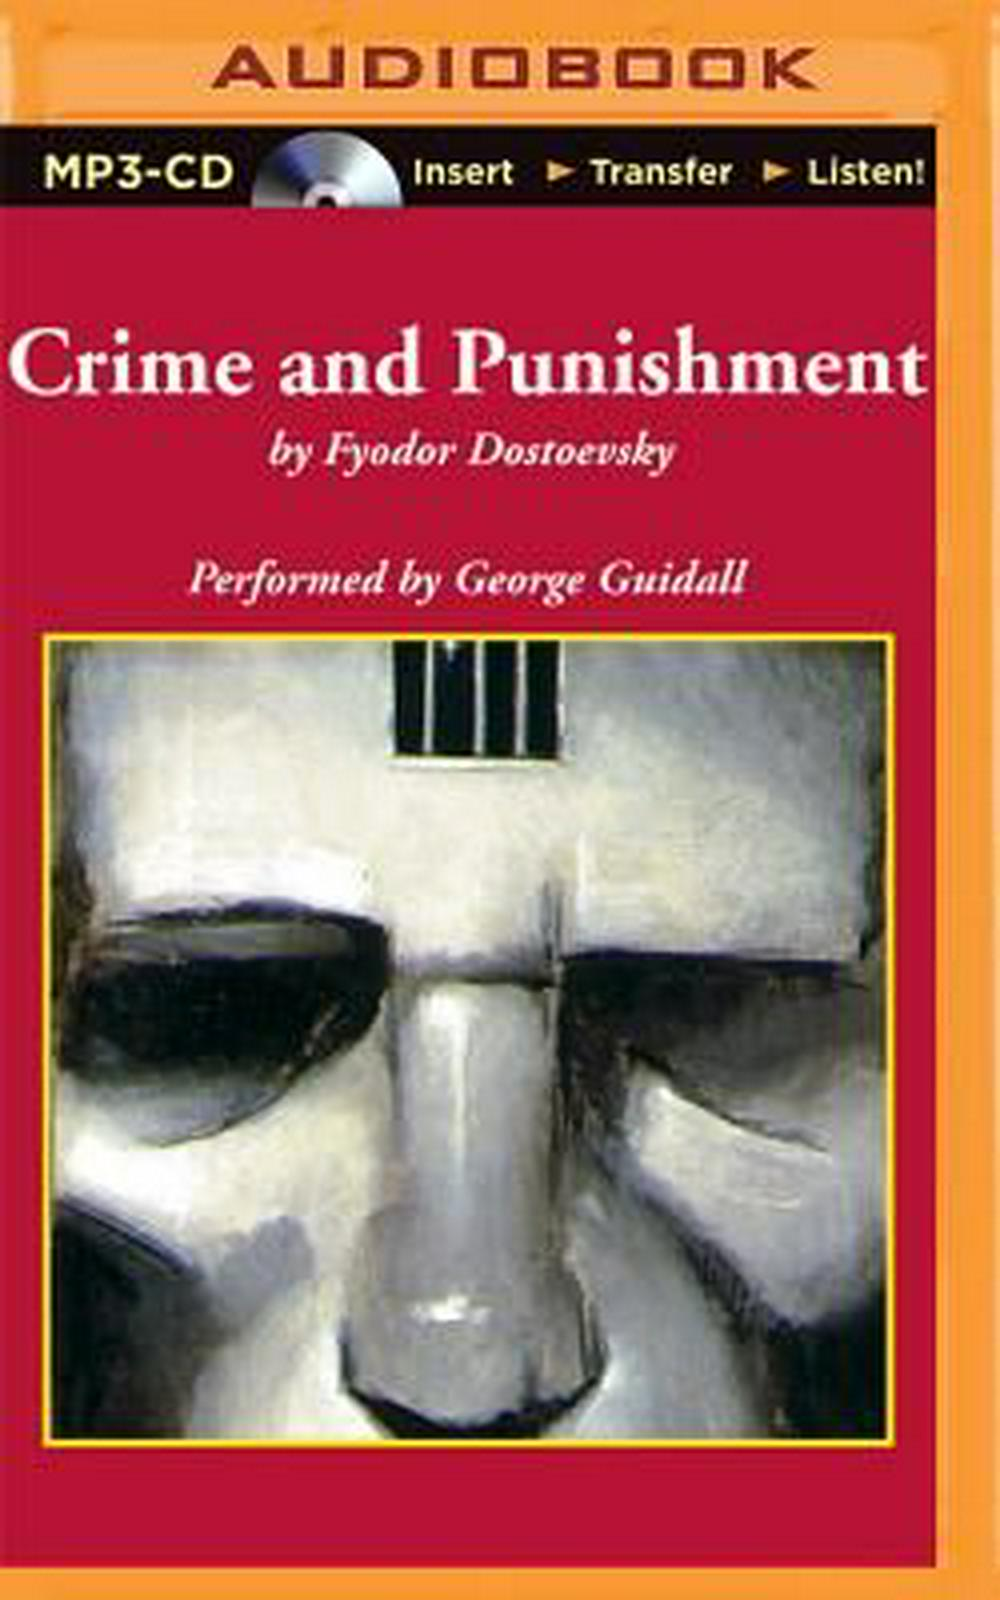 the suffering in the characters role in crime and punishment by fyodor dostoevsky Suffering in crime and punishment in the novel crime and punishment, by fyodor dostoevsky, suffering is an integral part of every character's role however, the message that dostoevsky wants to present with the main character, raskolnikov, is not one of the christian idea of salvation through suffering.